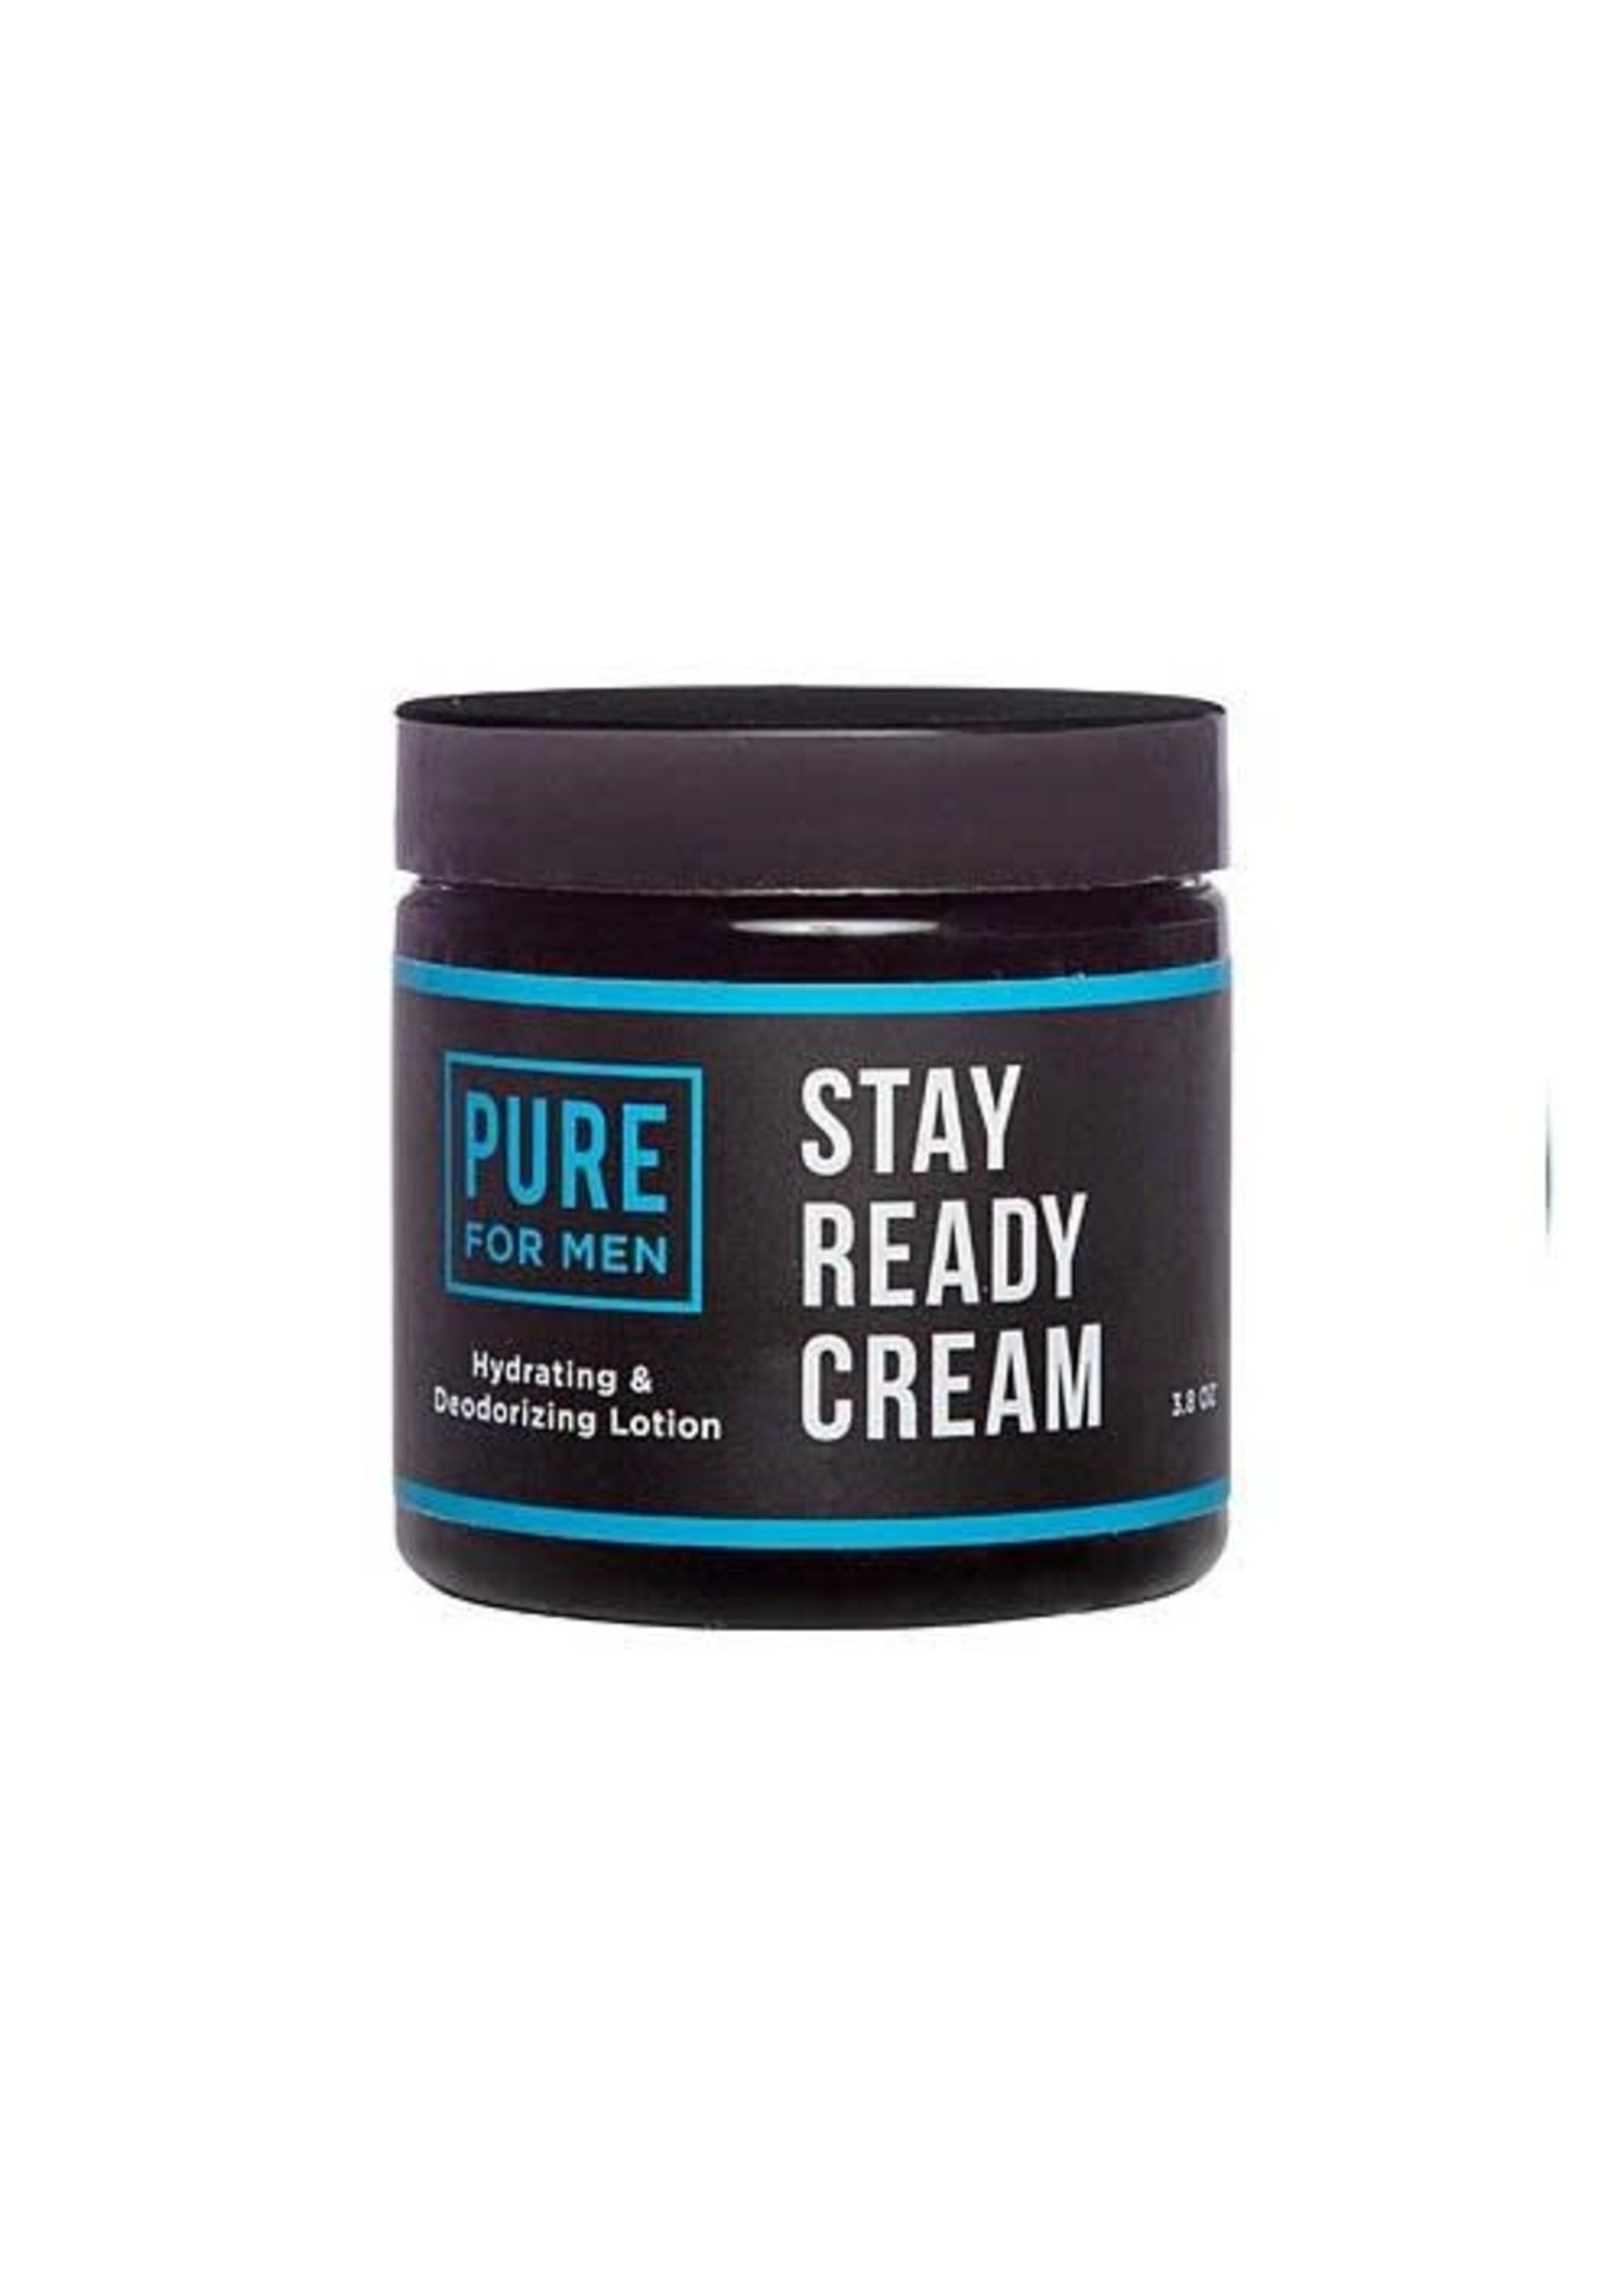 Pure for Men Pure for Men Stay Ready Cream